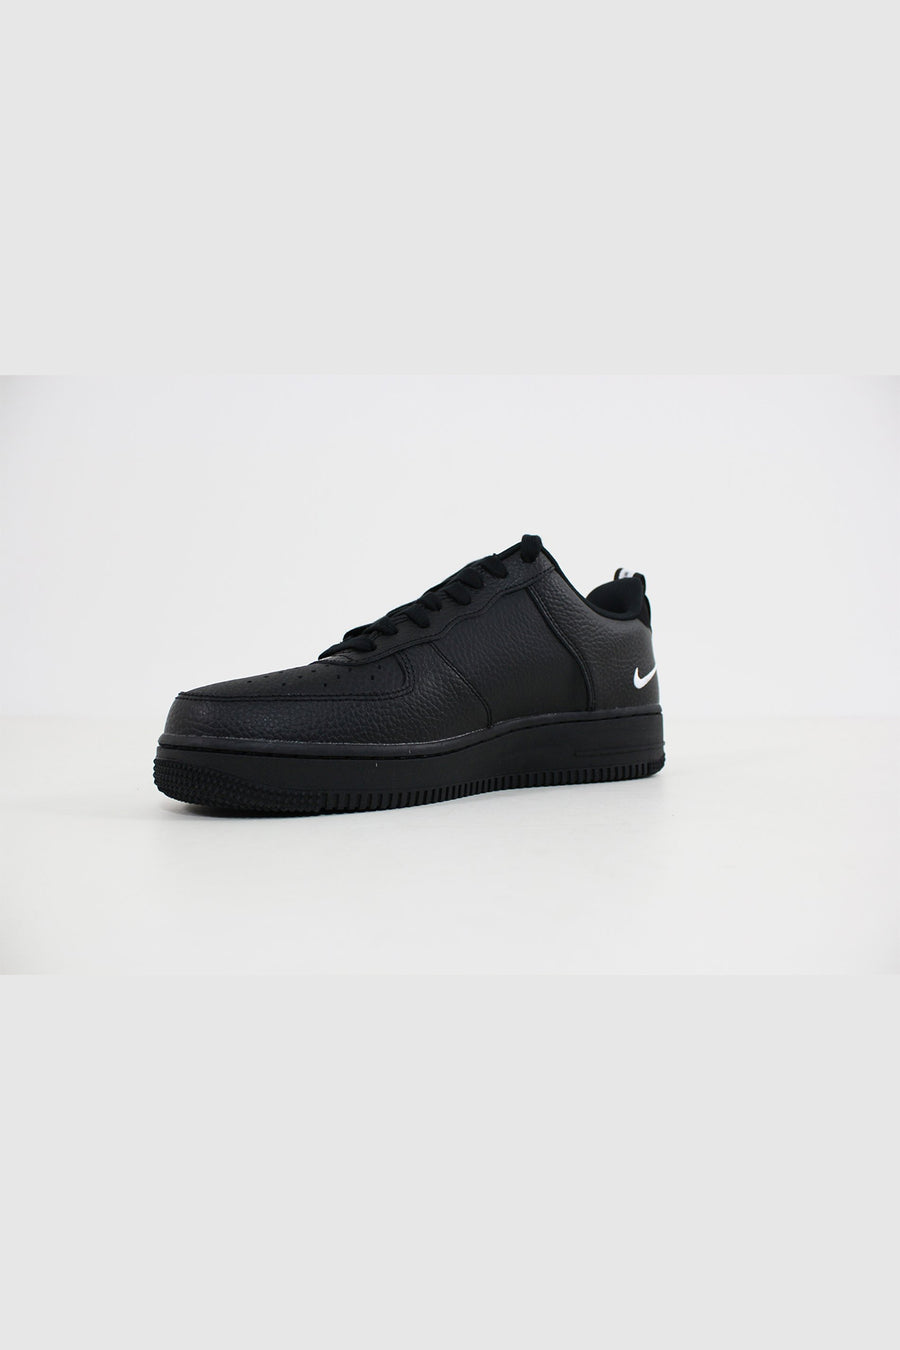 Nike - Air Force 1 '07 LV 8 Utlility (Black/ White Black Tour Yellow) AJ7747-001